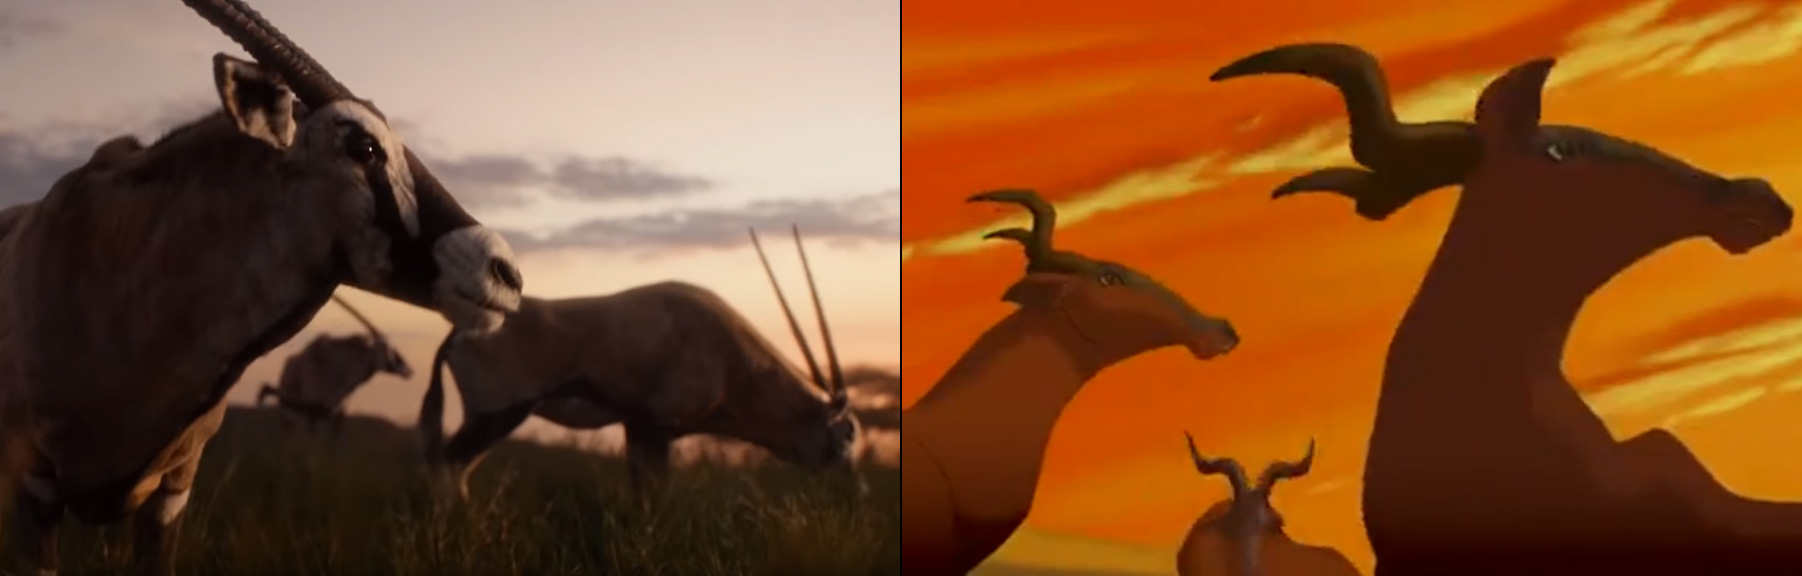 The Lion King Movie Side By Side With The Old